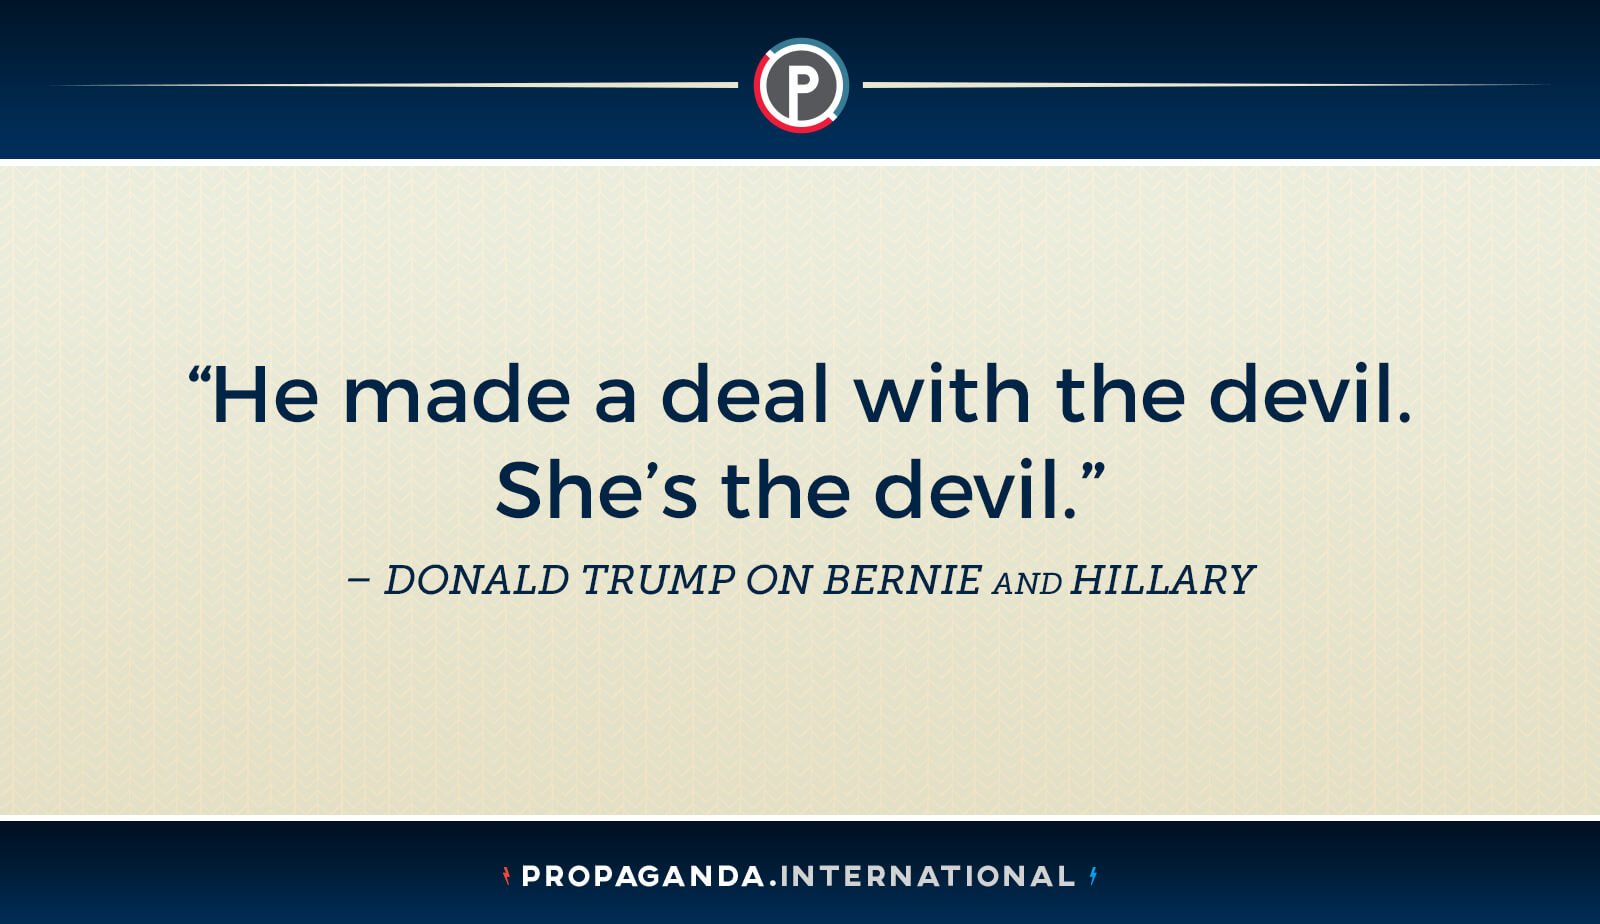 Hillary Clinton is the devil according to Trump.